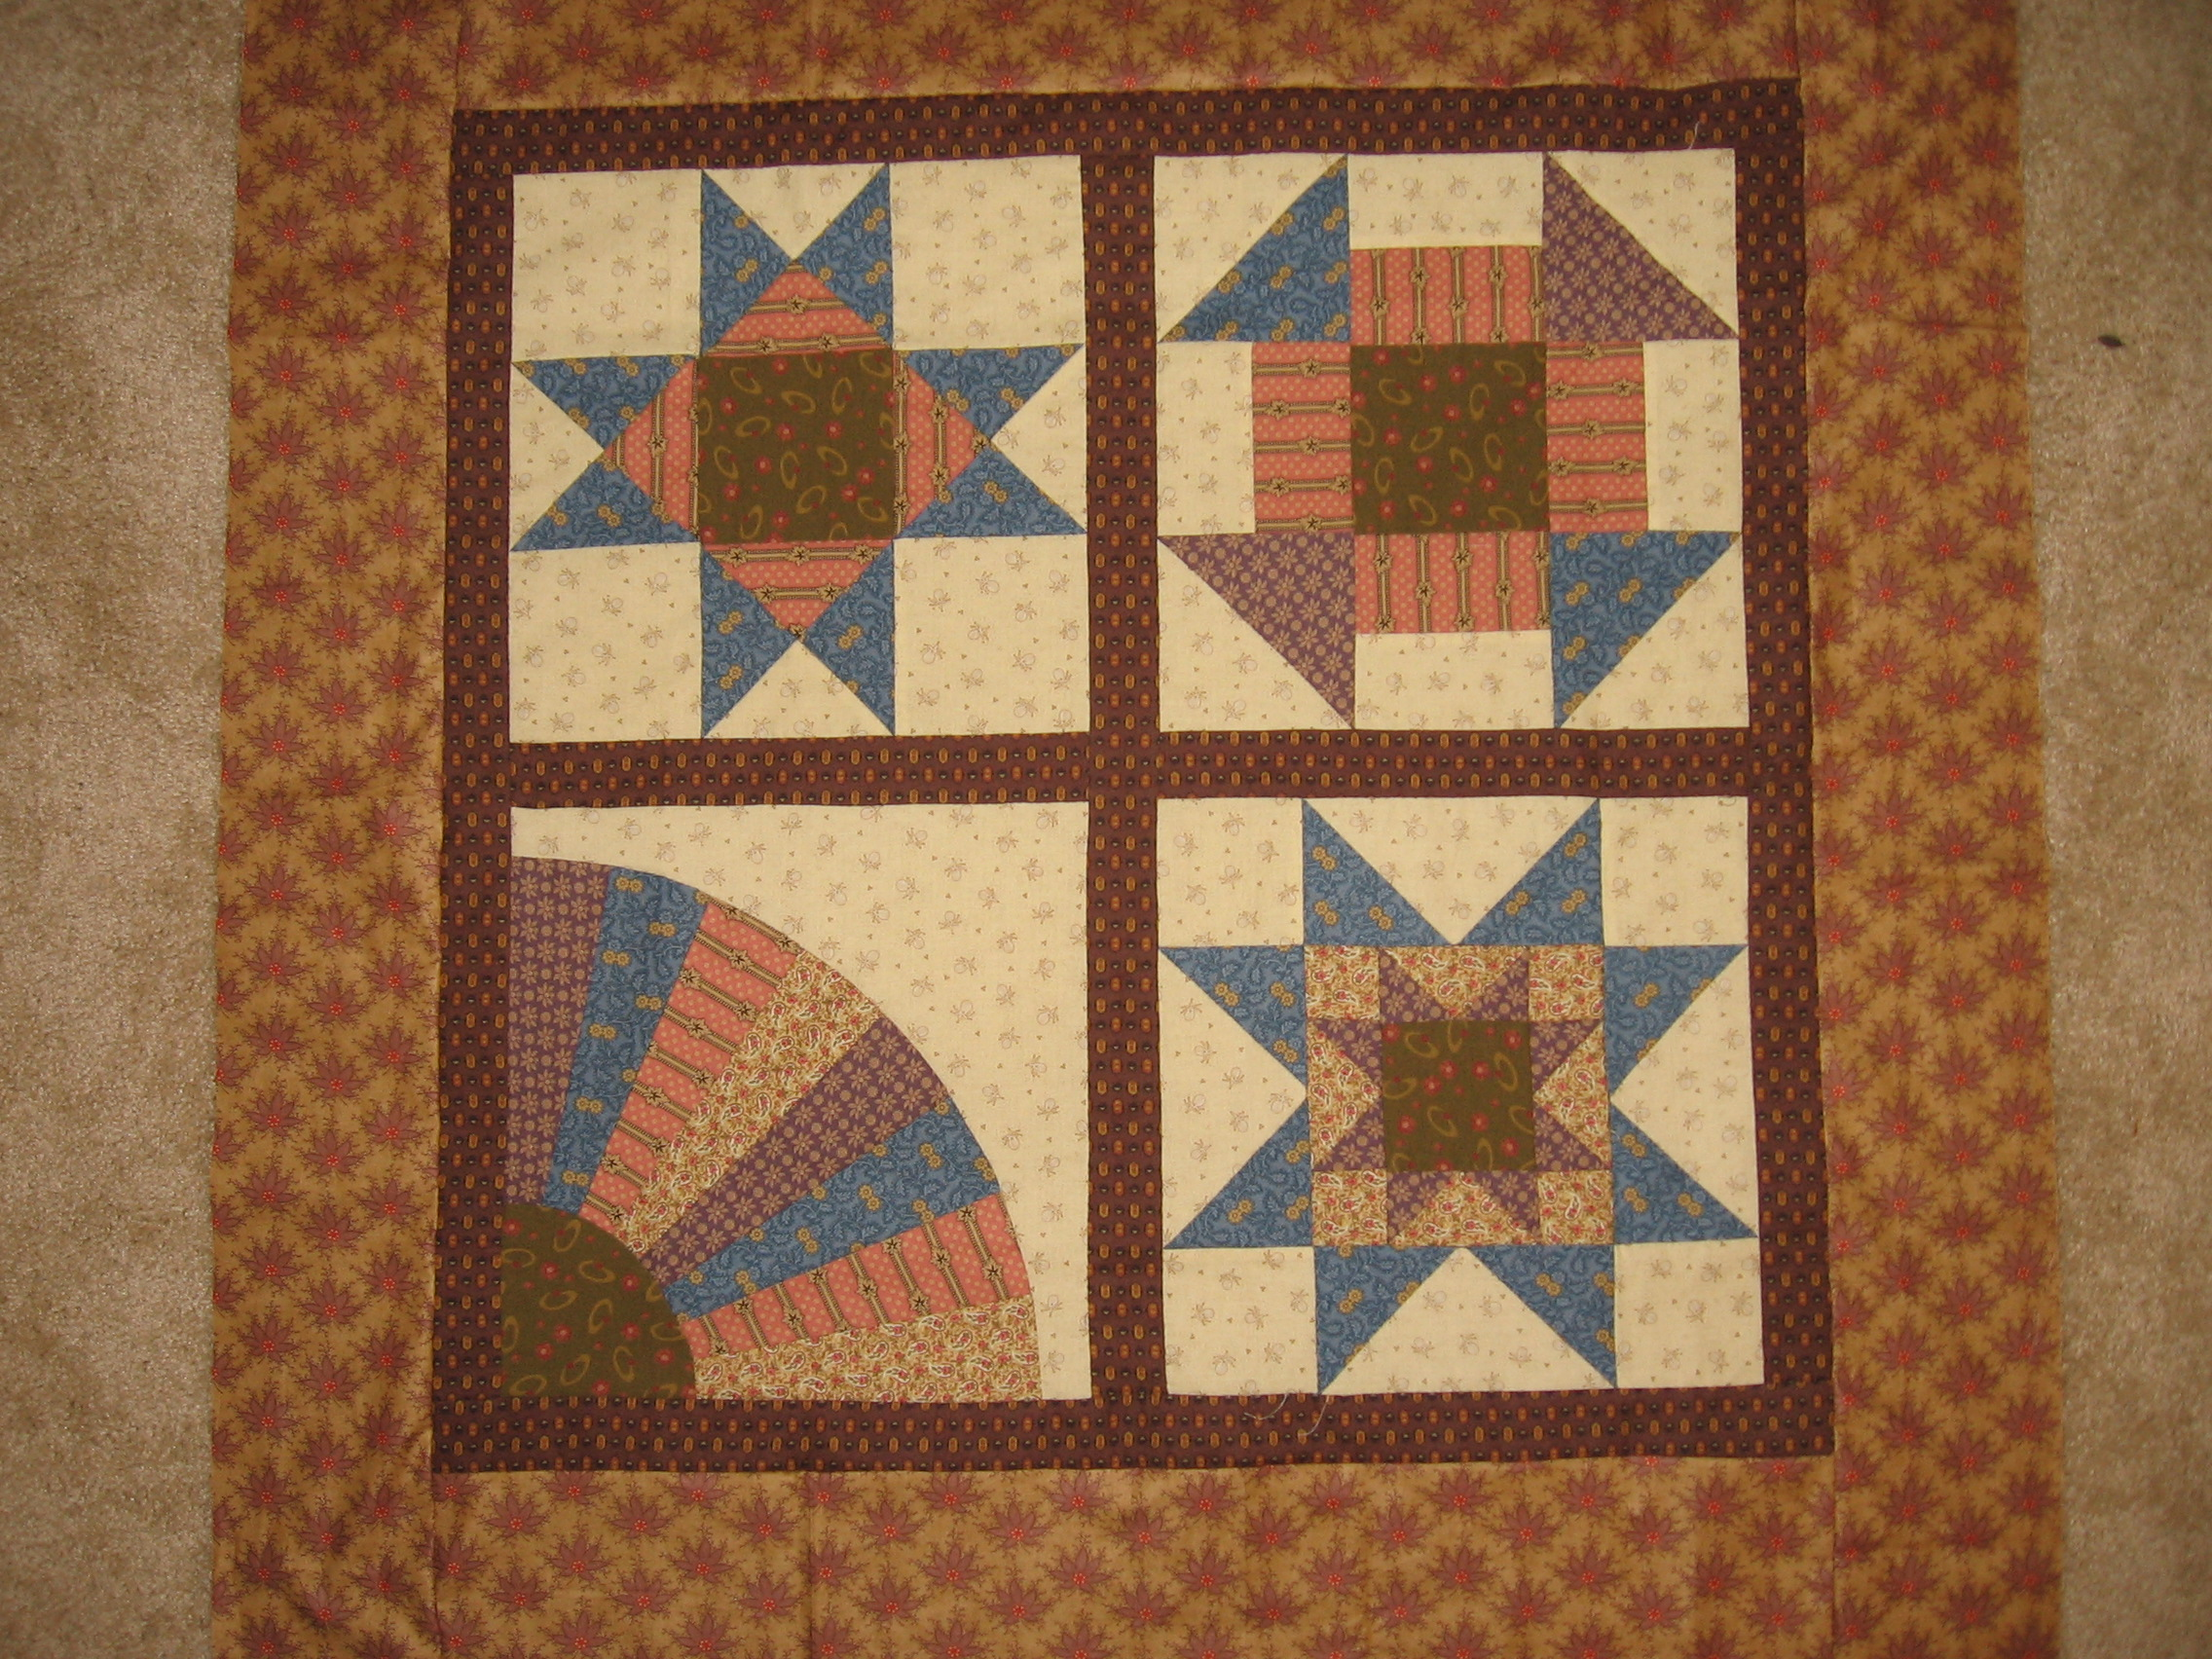 Hand-pieced Wall Hanging